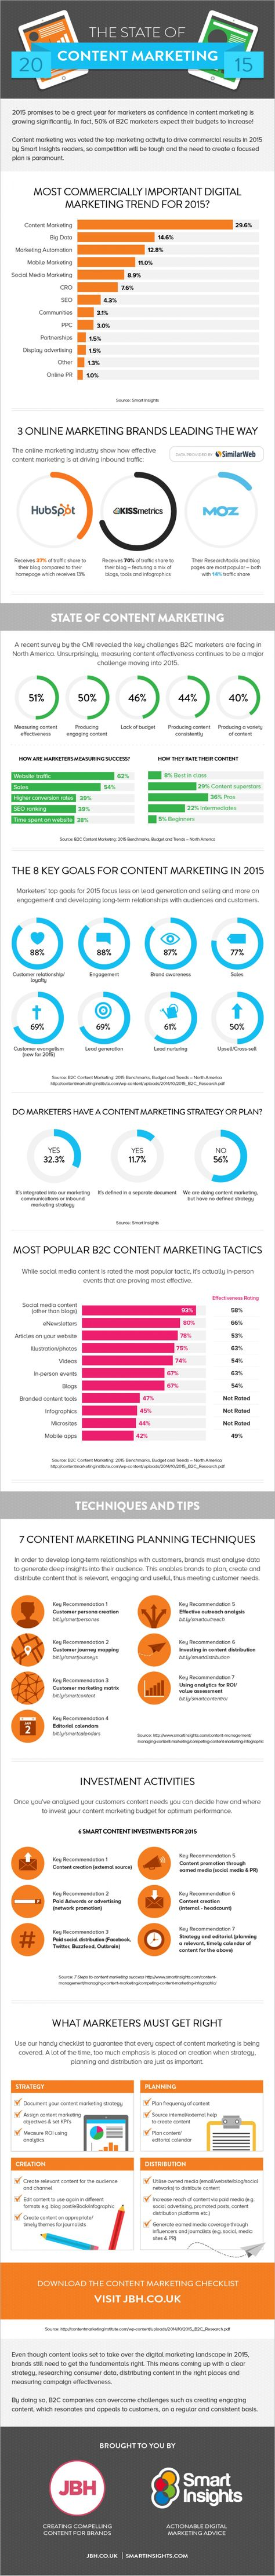 The State of Content Marketing 2015